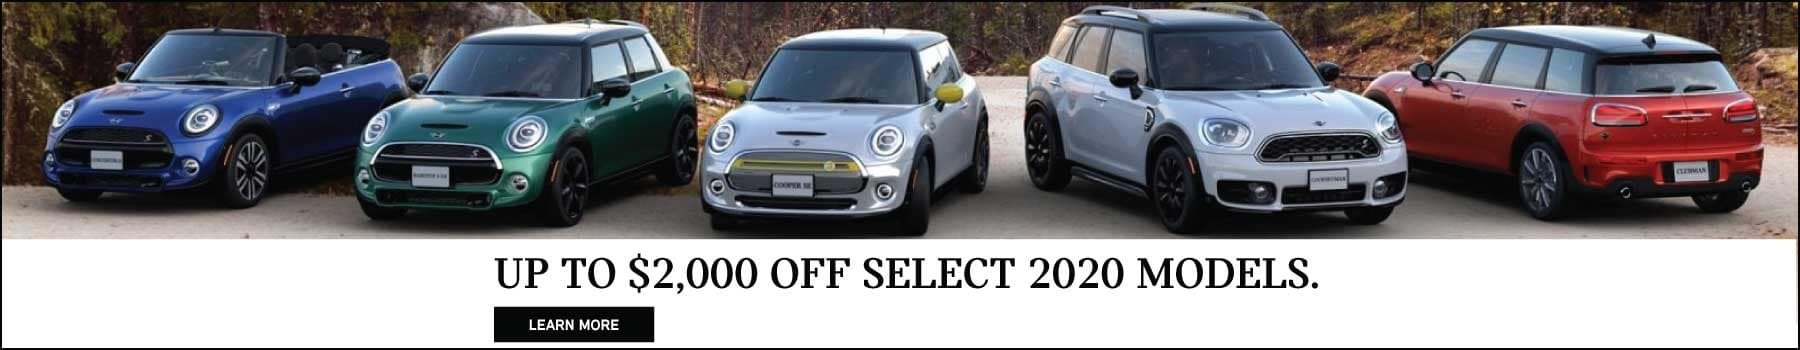 up to $2,000 off select 2020 models.